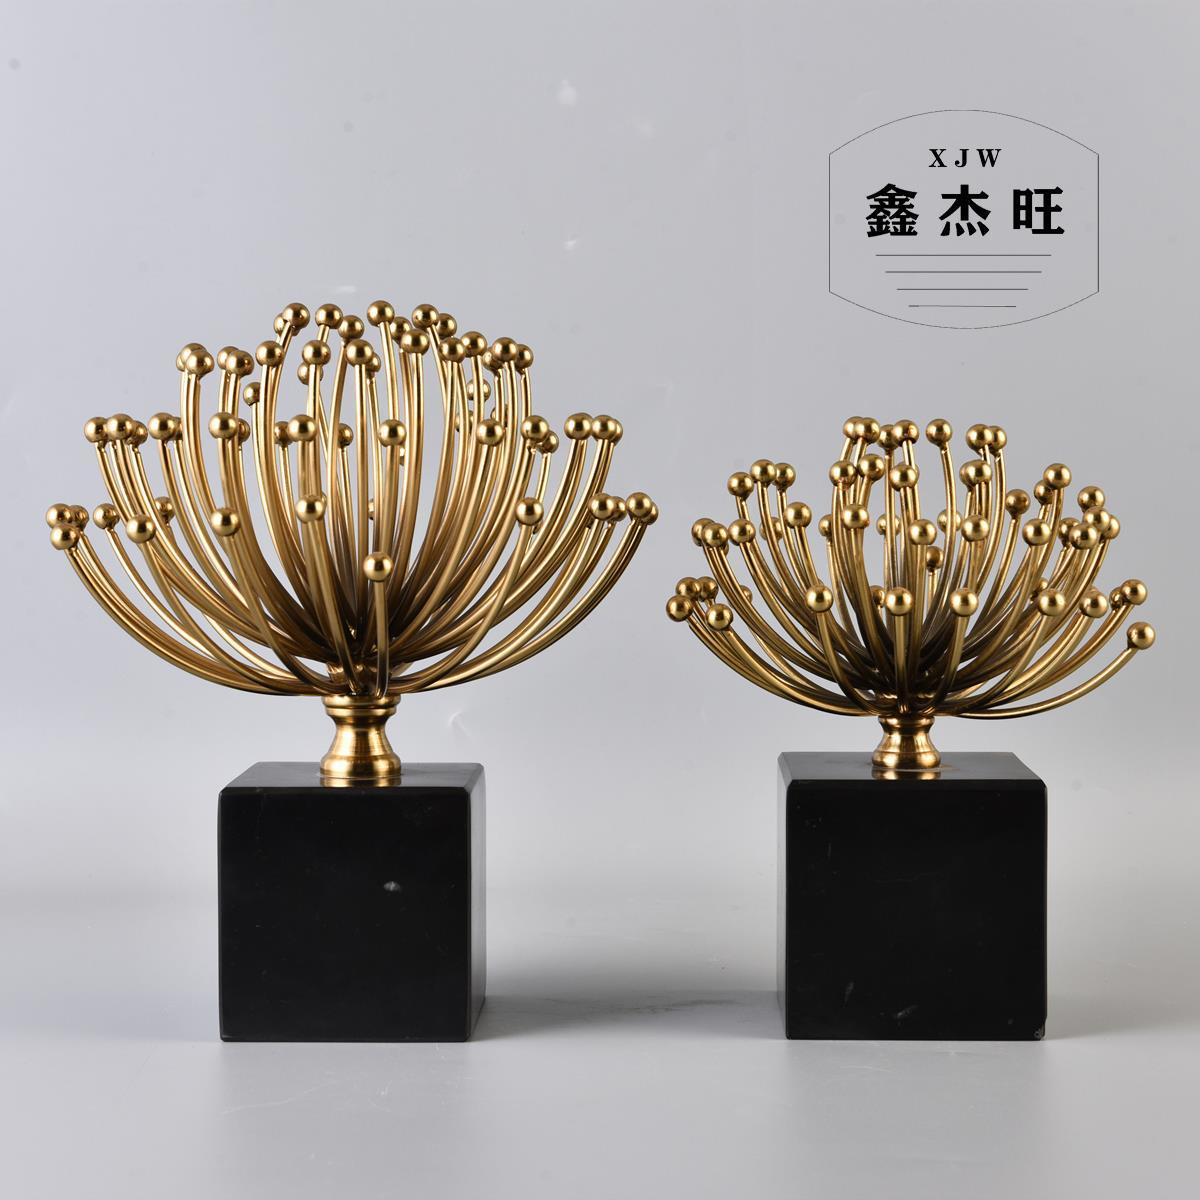 Modernistic Electroplated Flower for Nordic Style Living Room Decorations